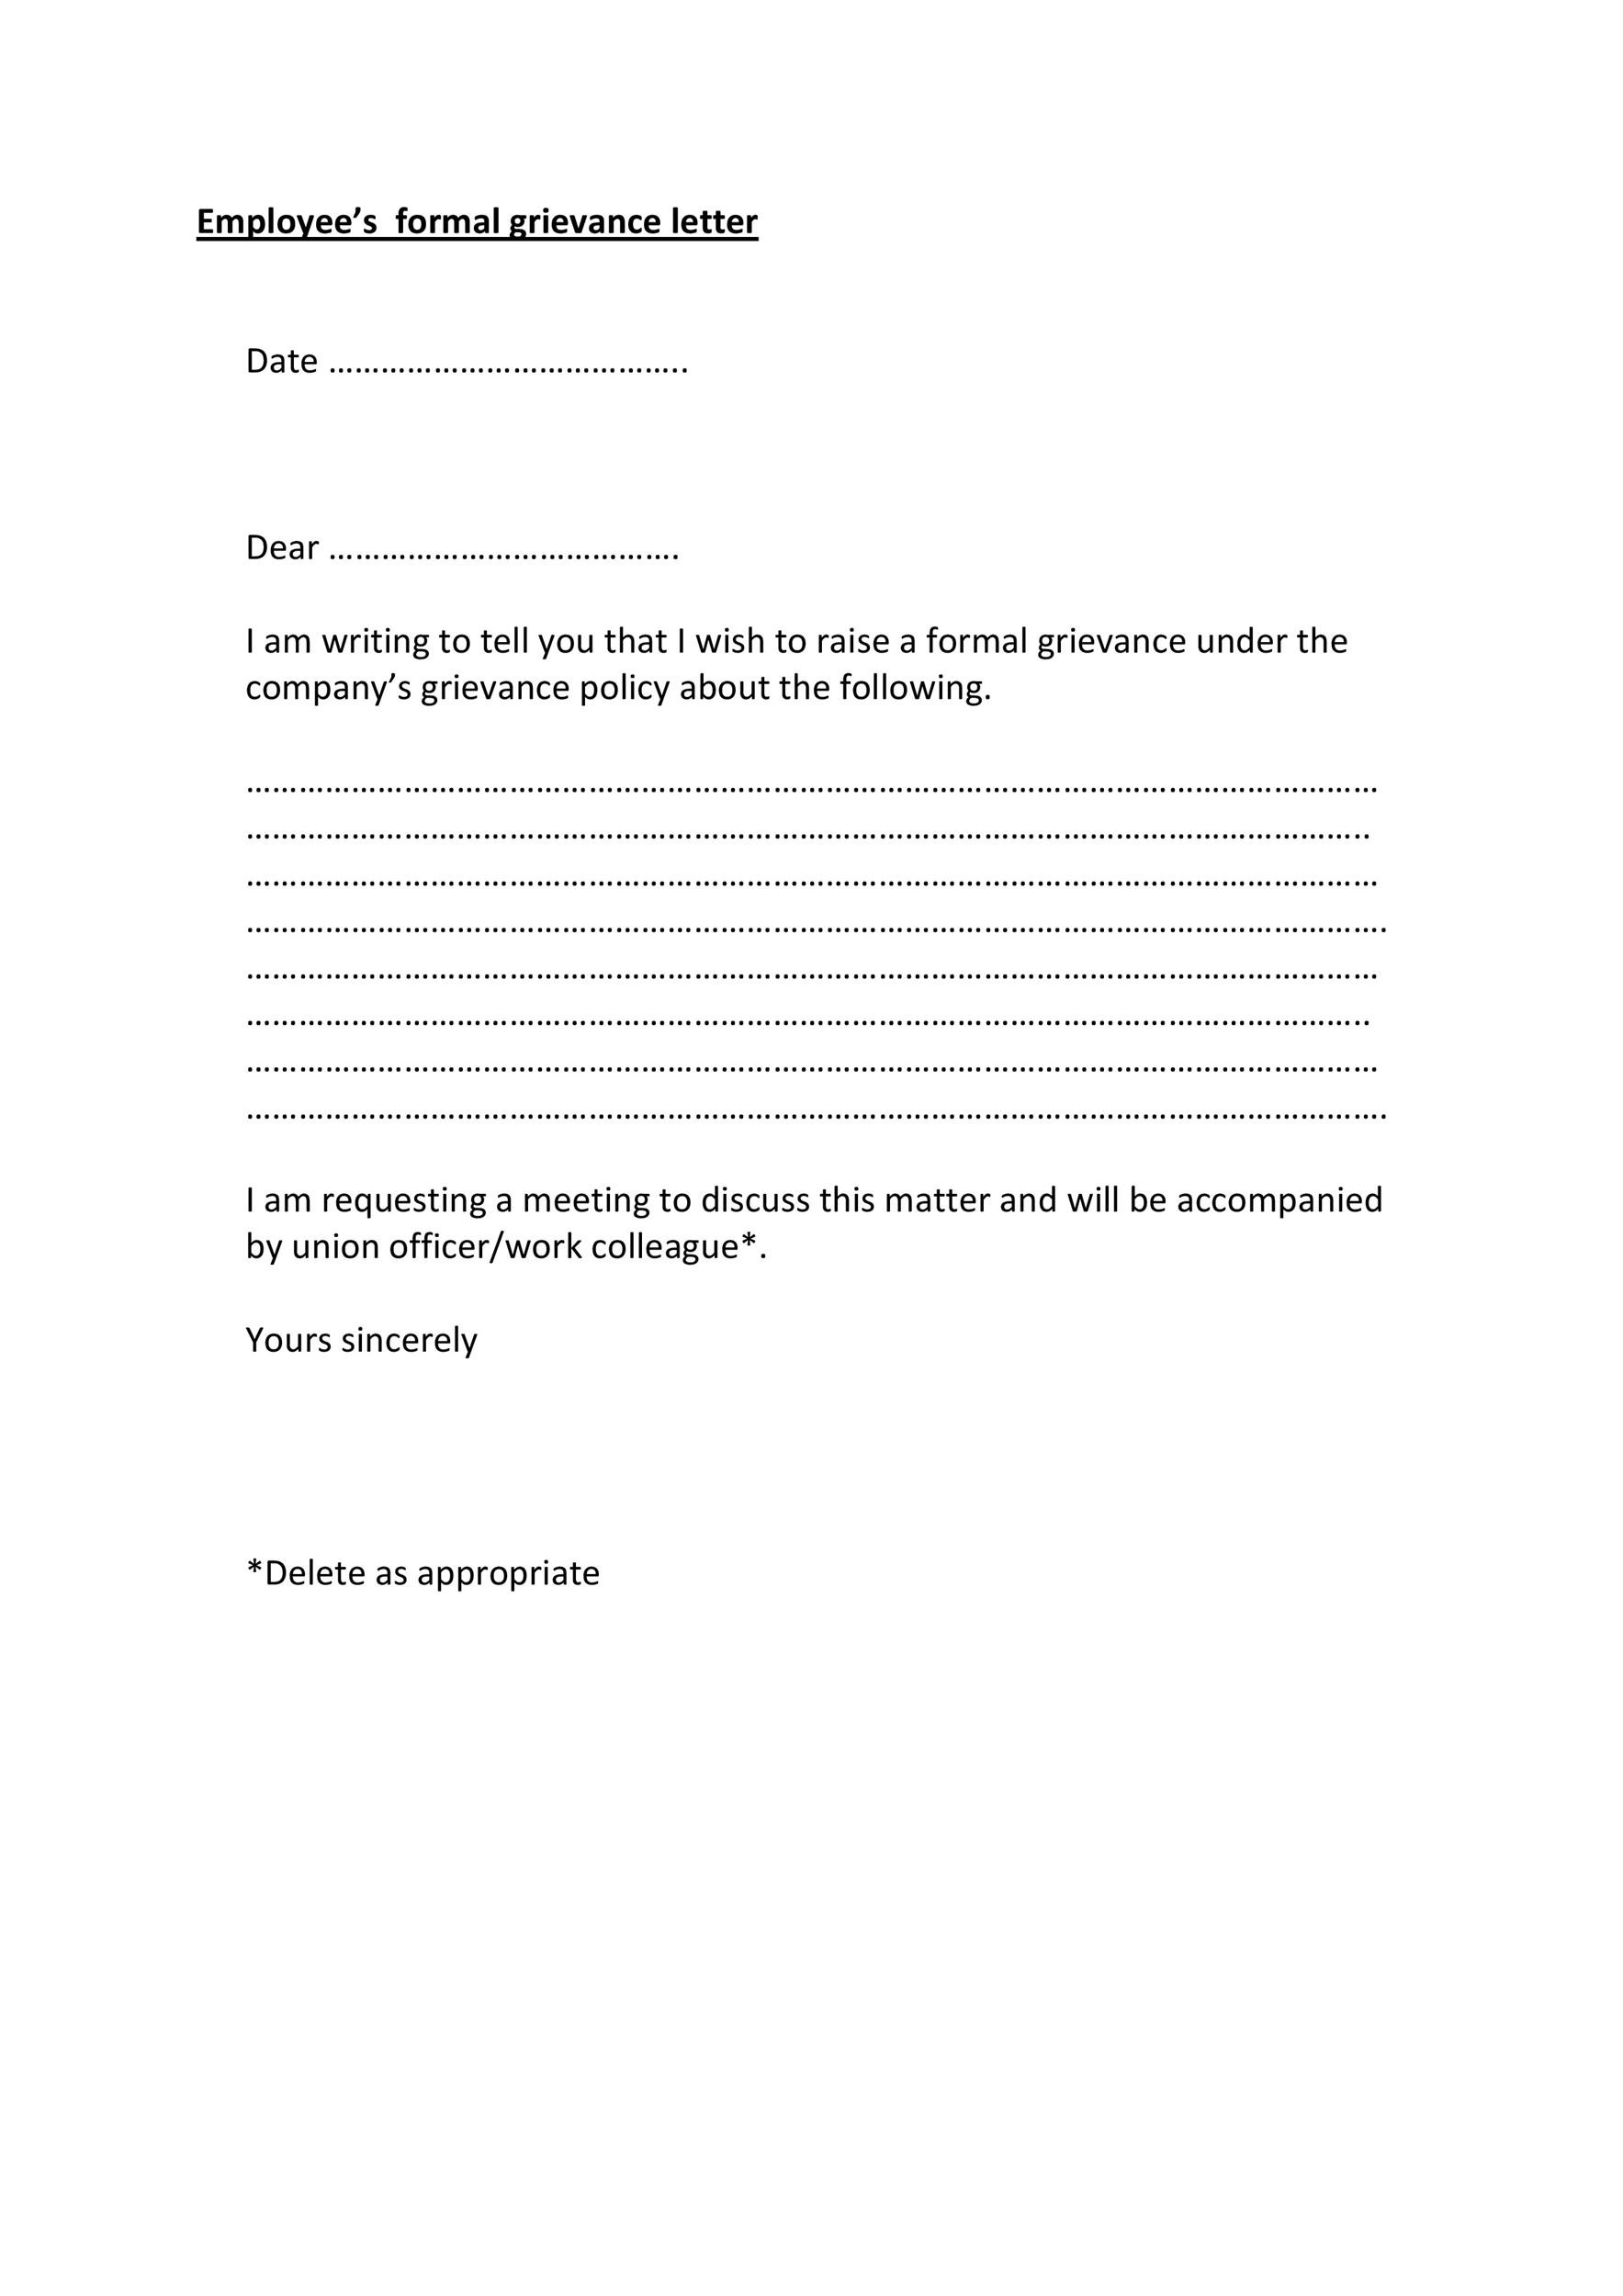 Free grievance letter 09